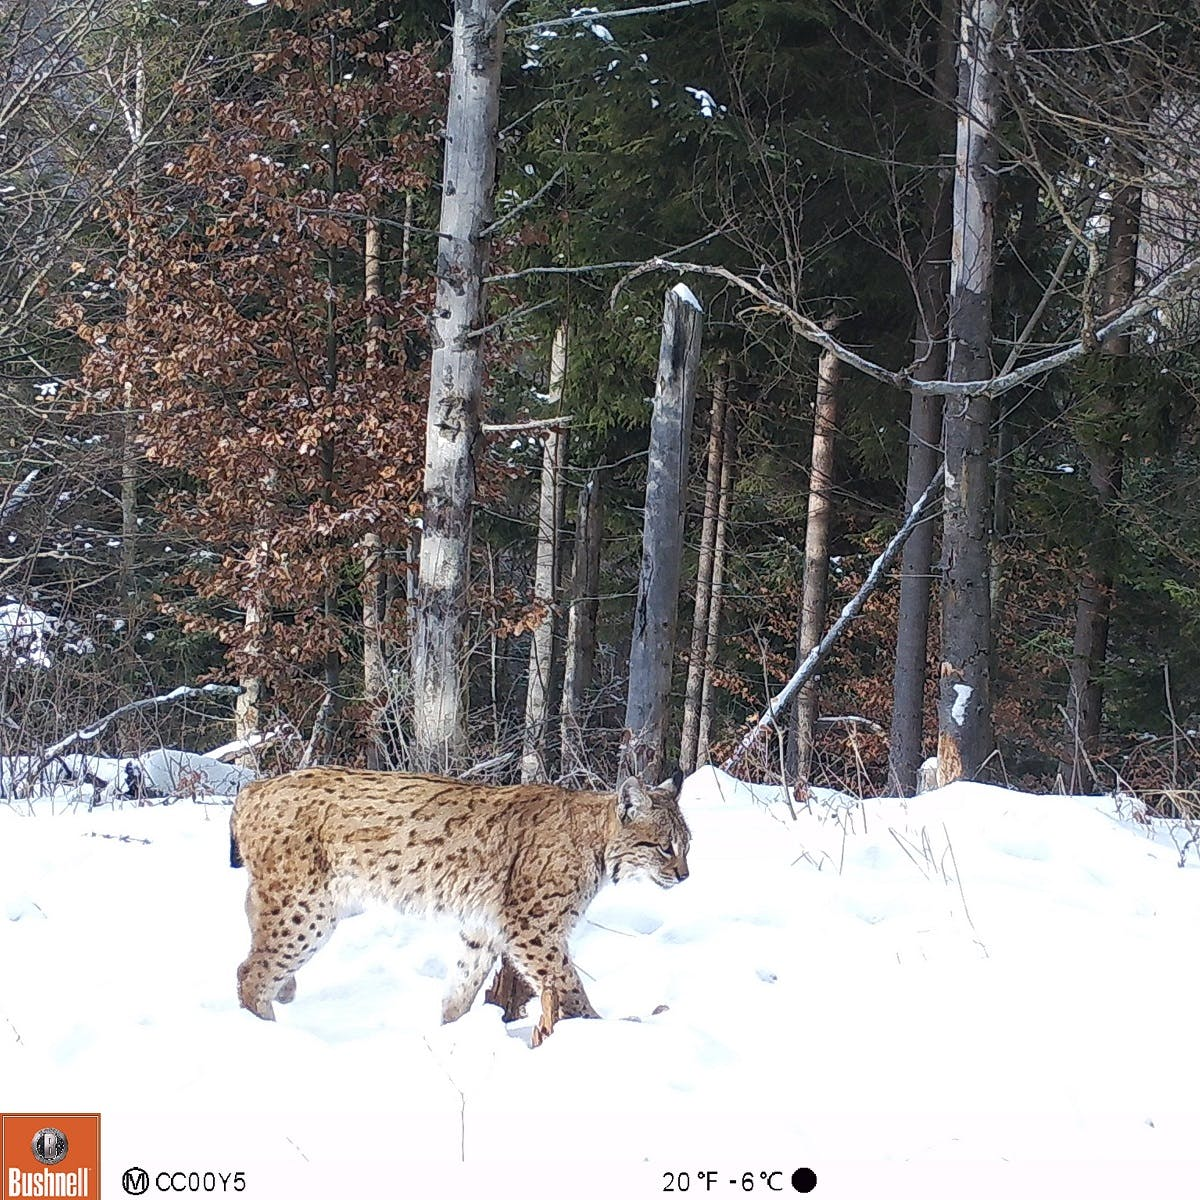 A lynx caught on our camera trap in Romania's Southern Carpathians